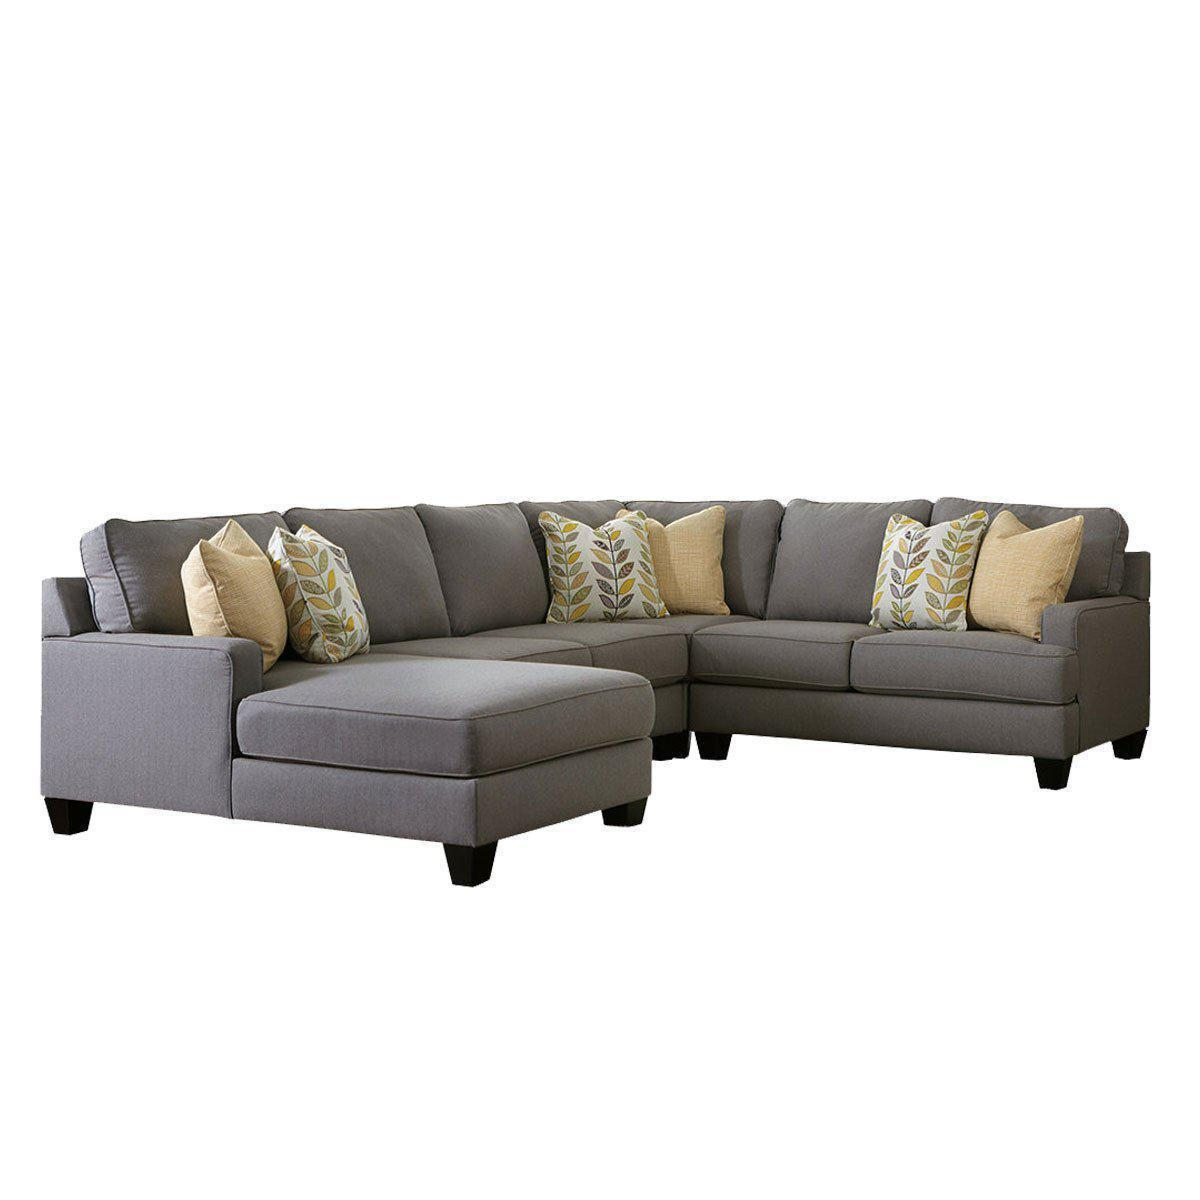 Chelsea 4-piece Sectional